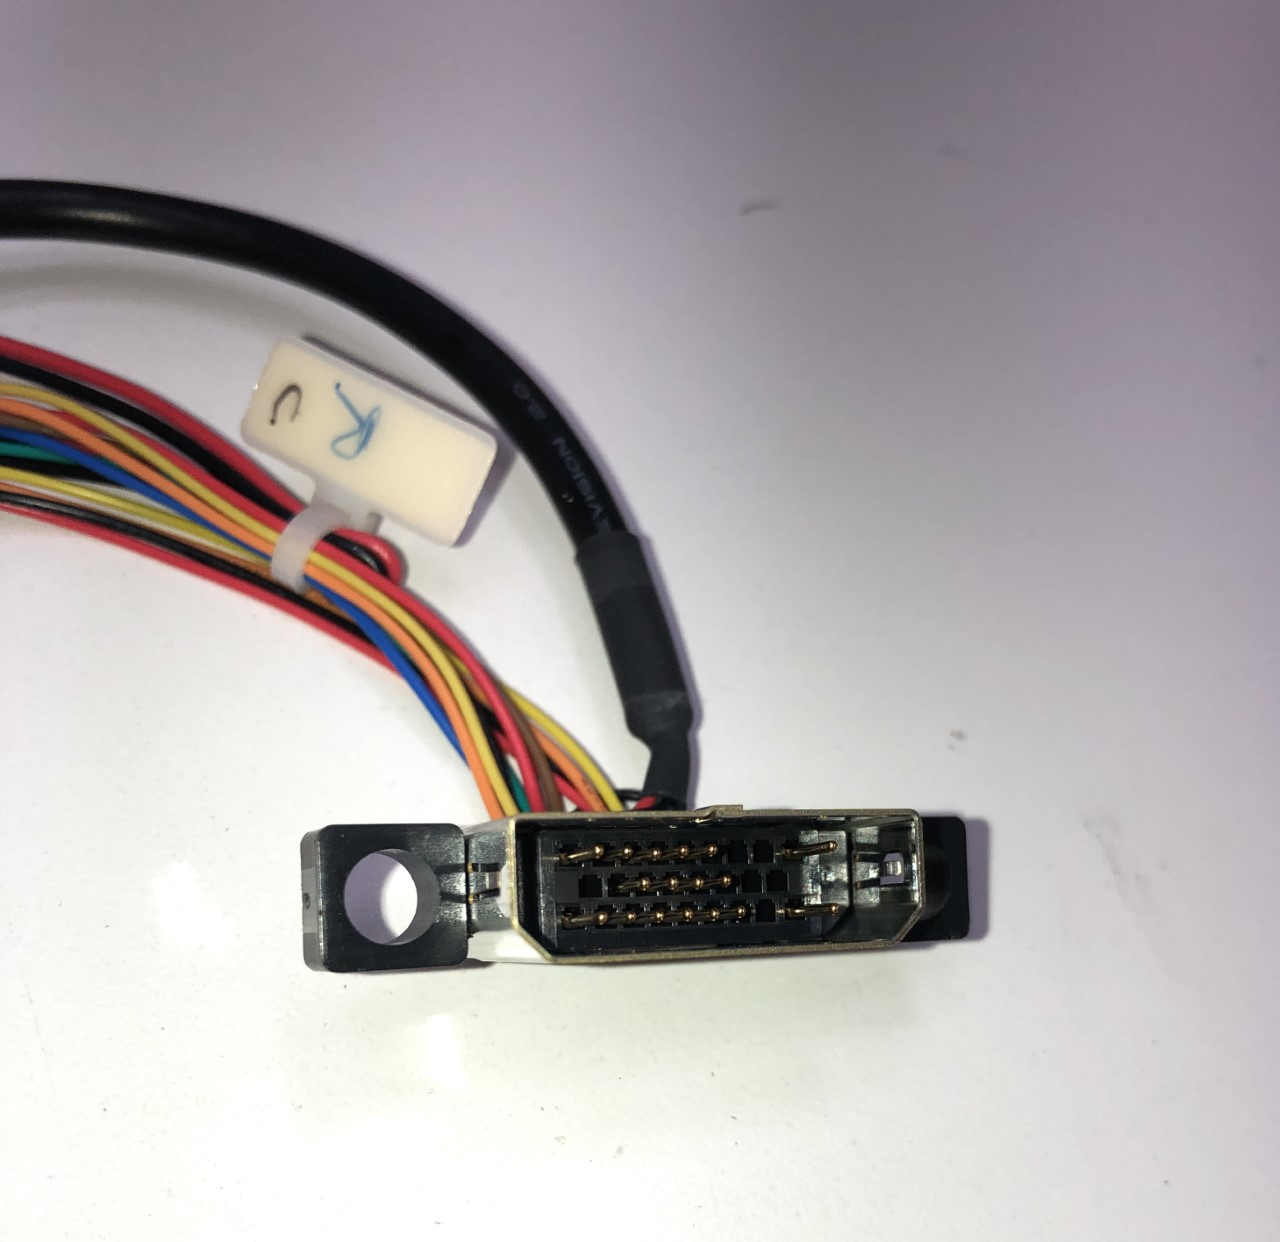 Bill Validator Harness and multi connector for use with JCM IVizion on